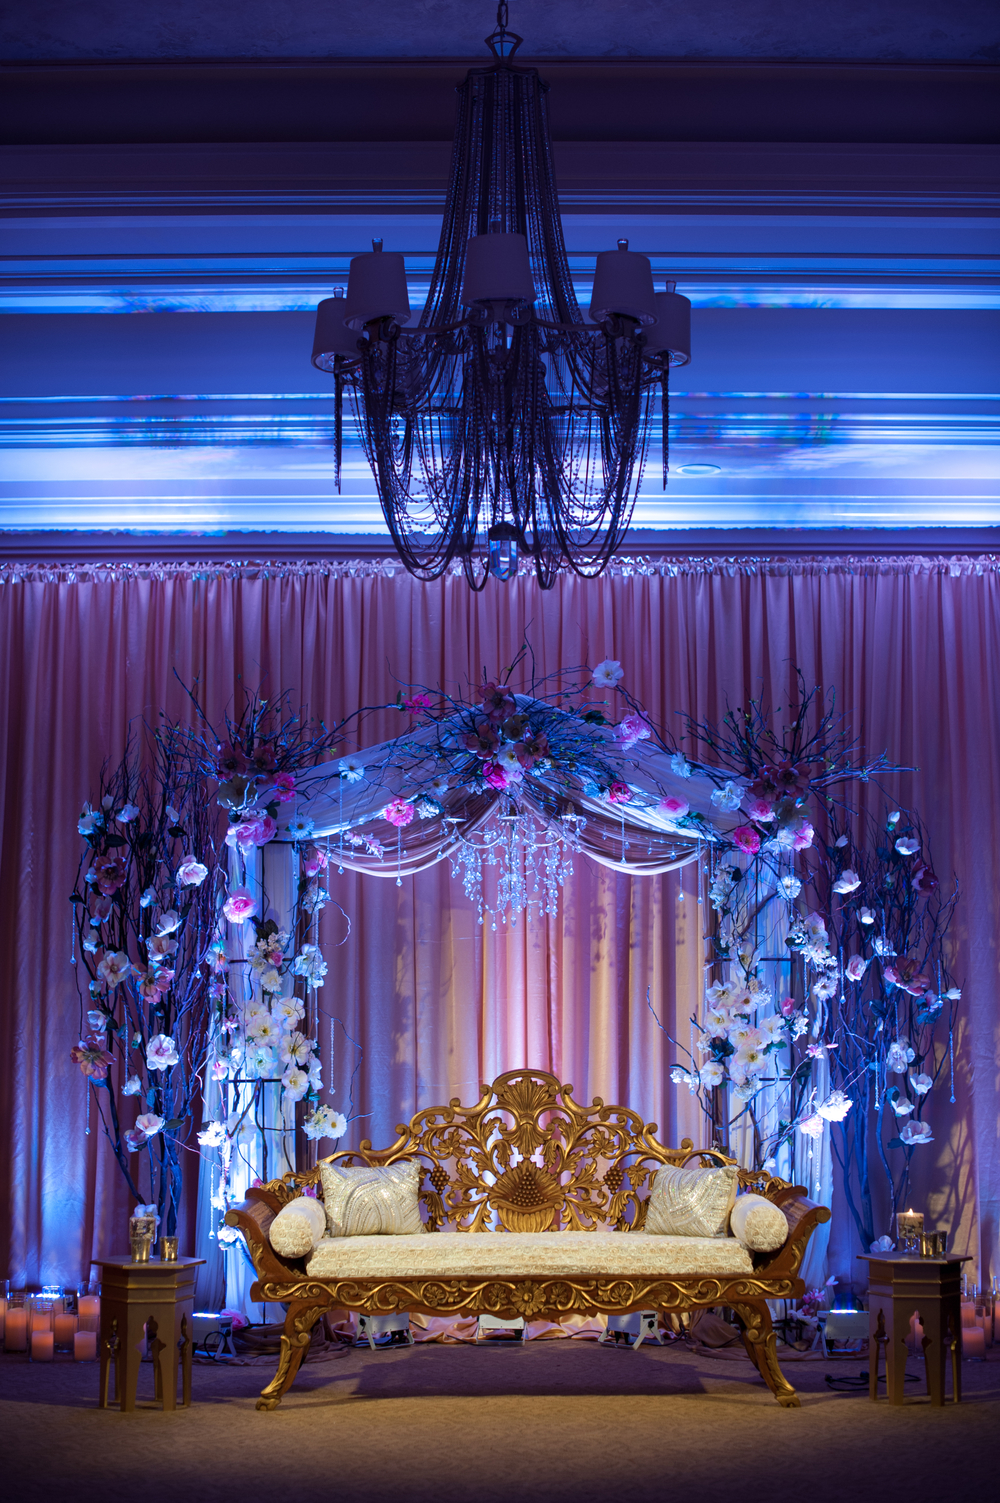 LovestoryPictures_AnaisEvents_Baljit_Reception - 08.jpg